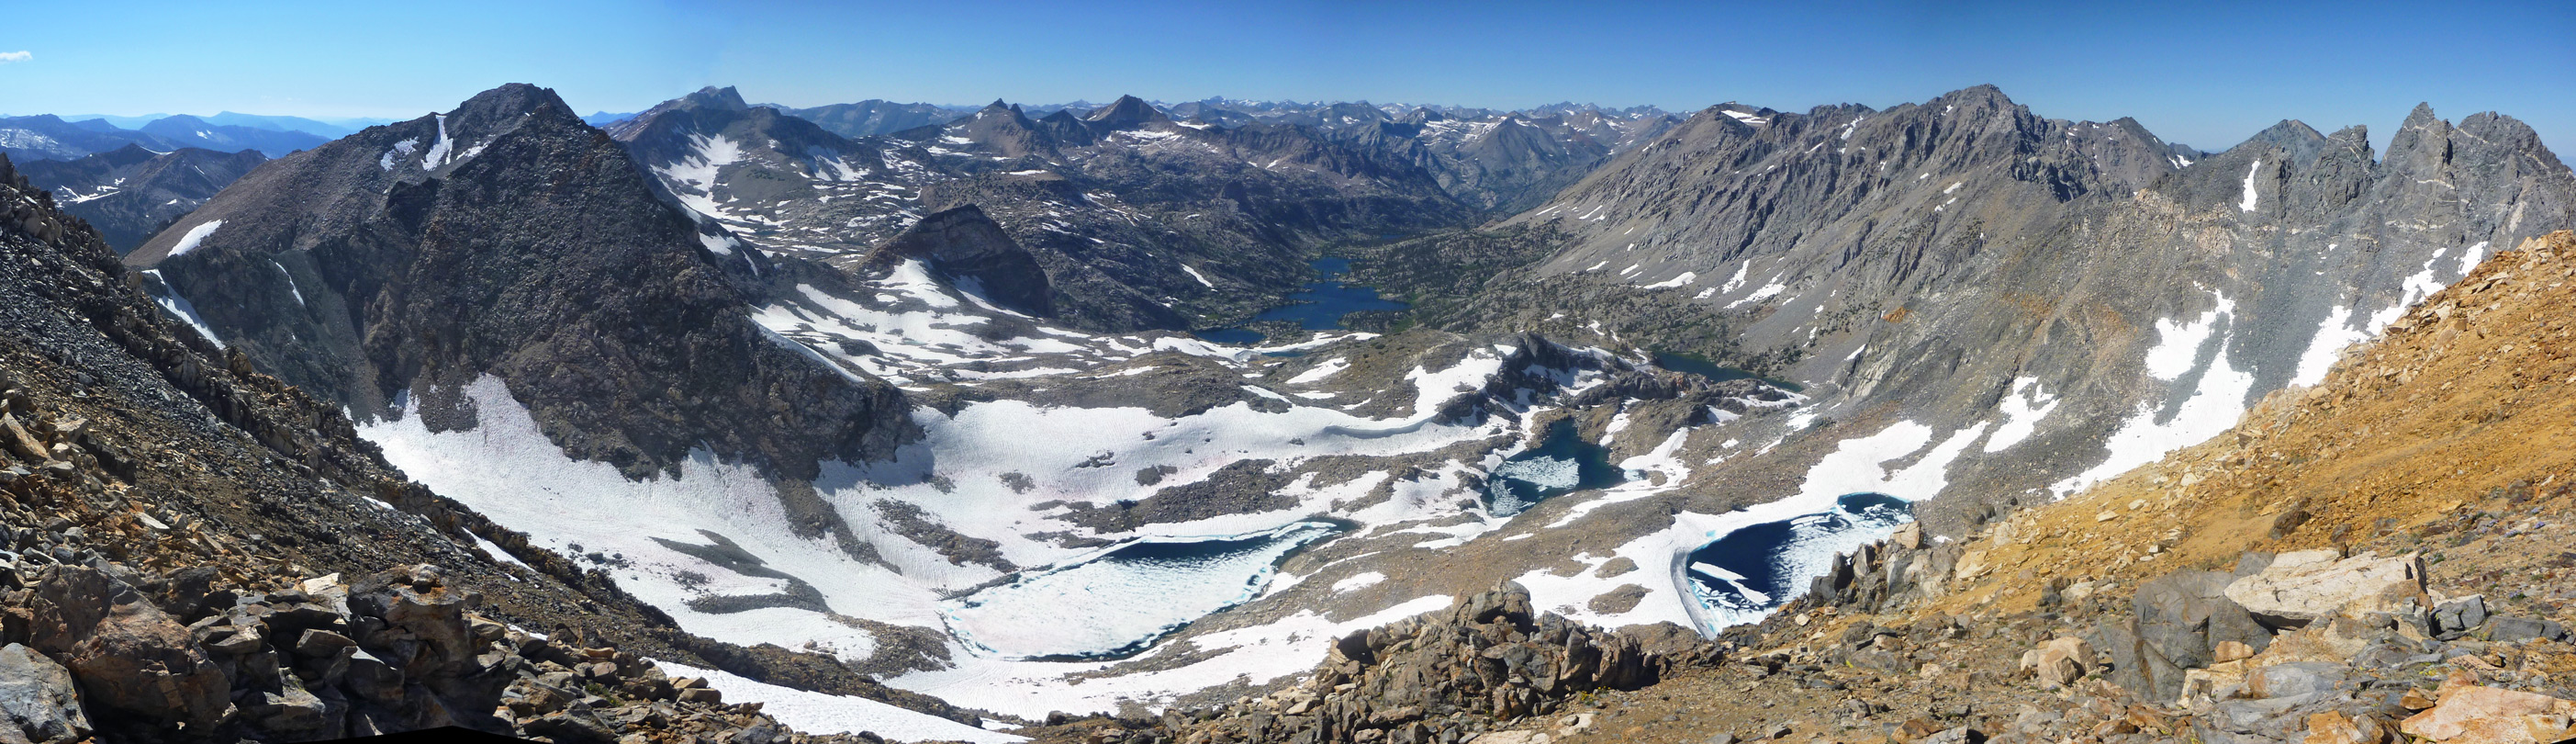 Panorama from Mount Gould